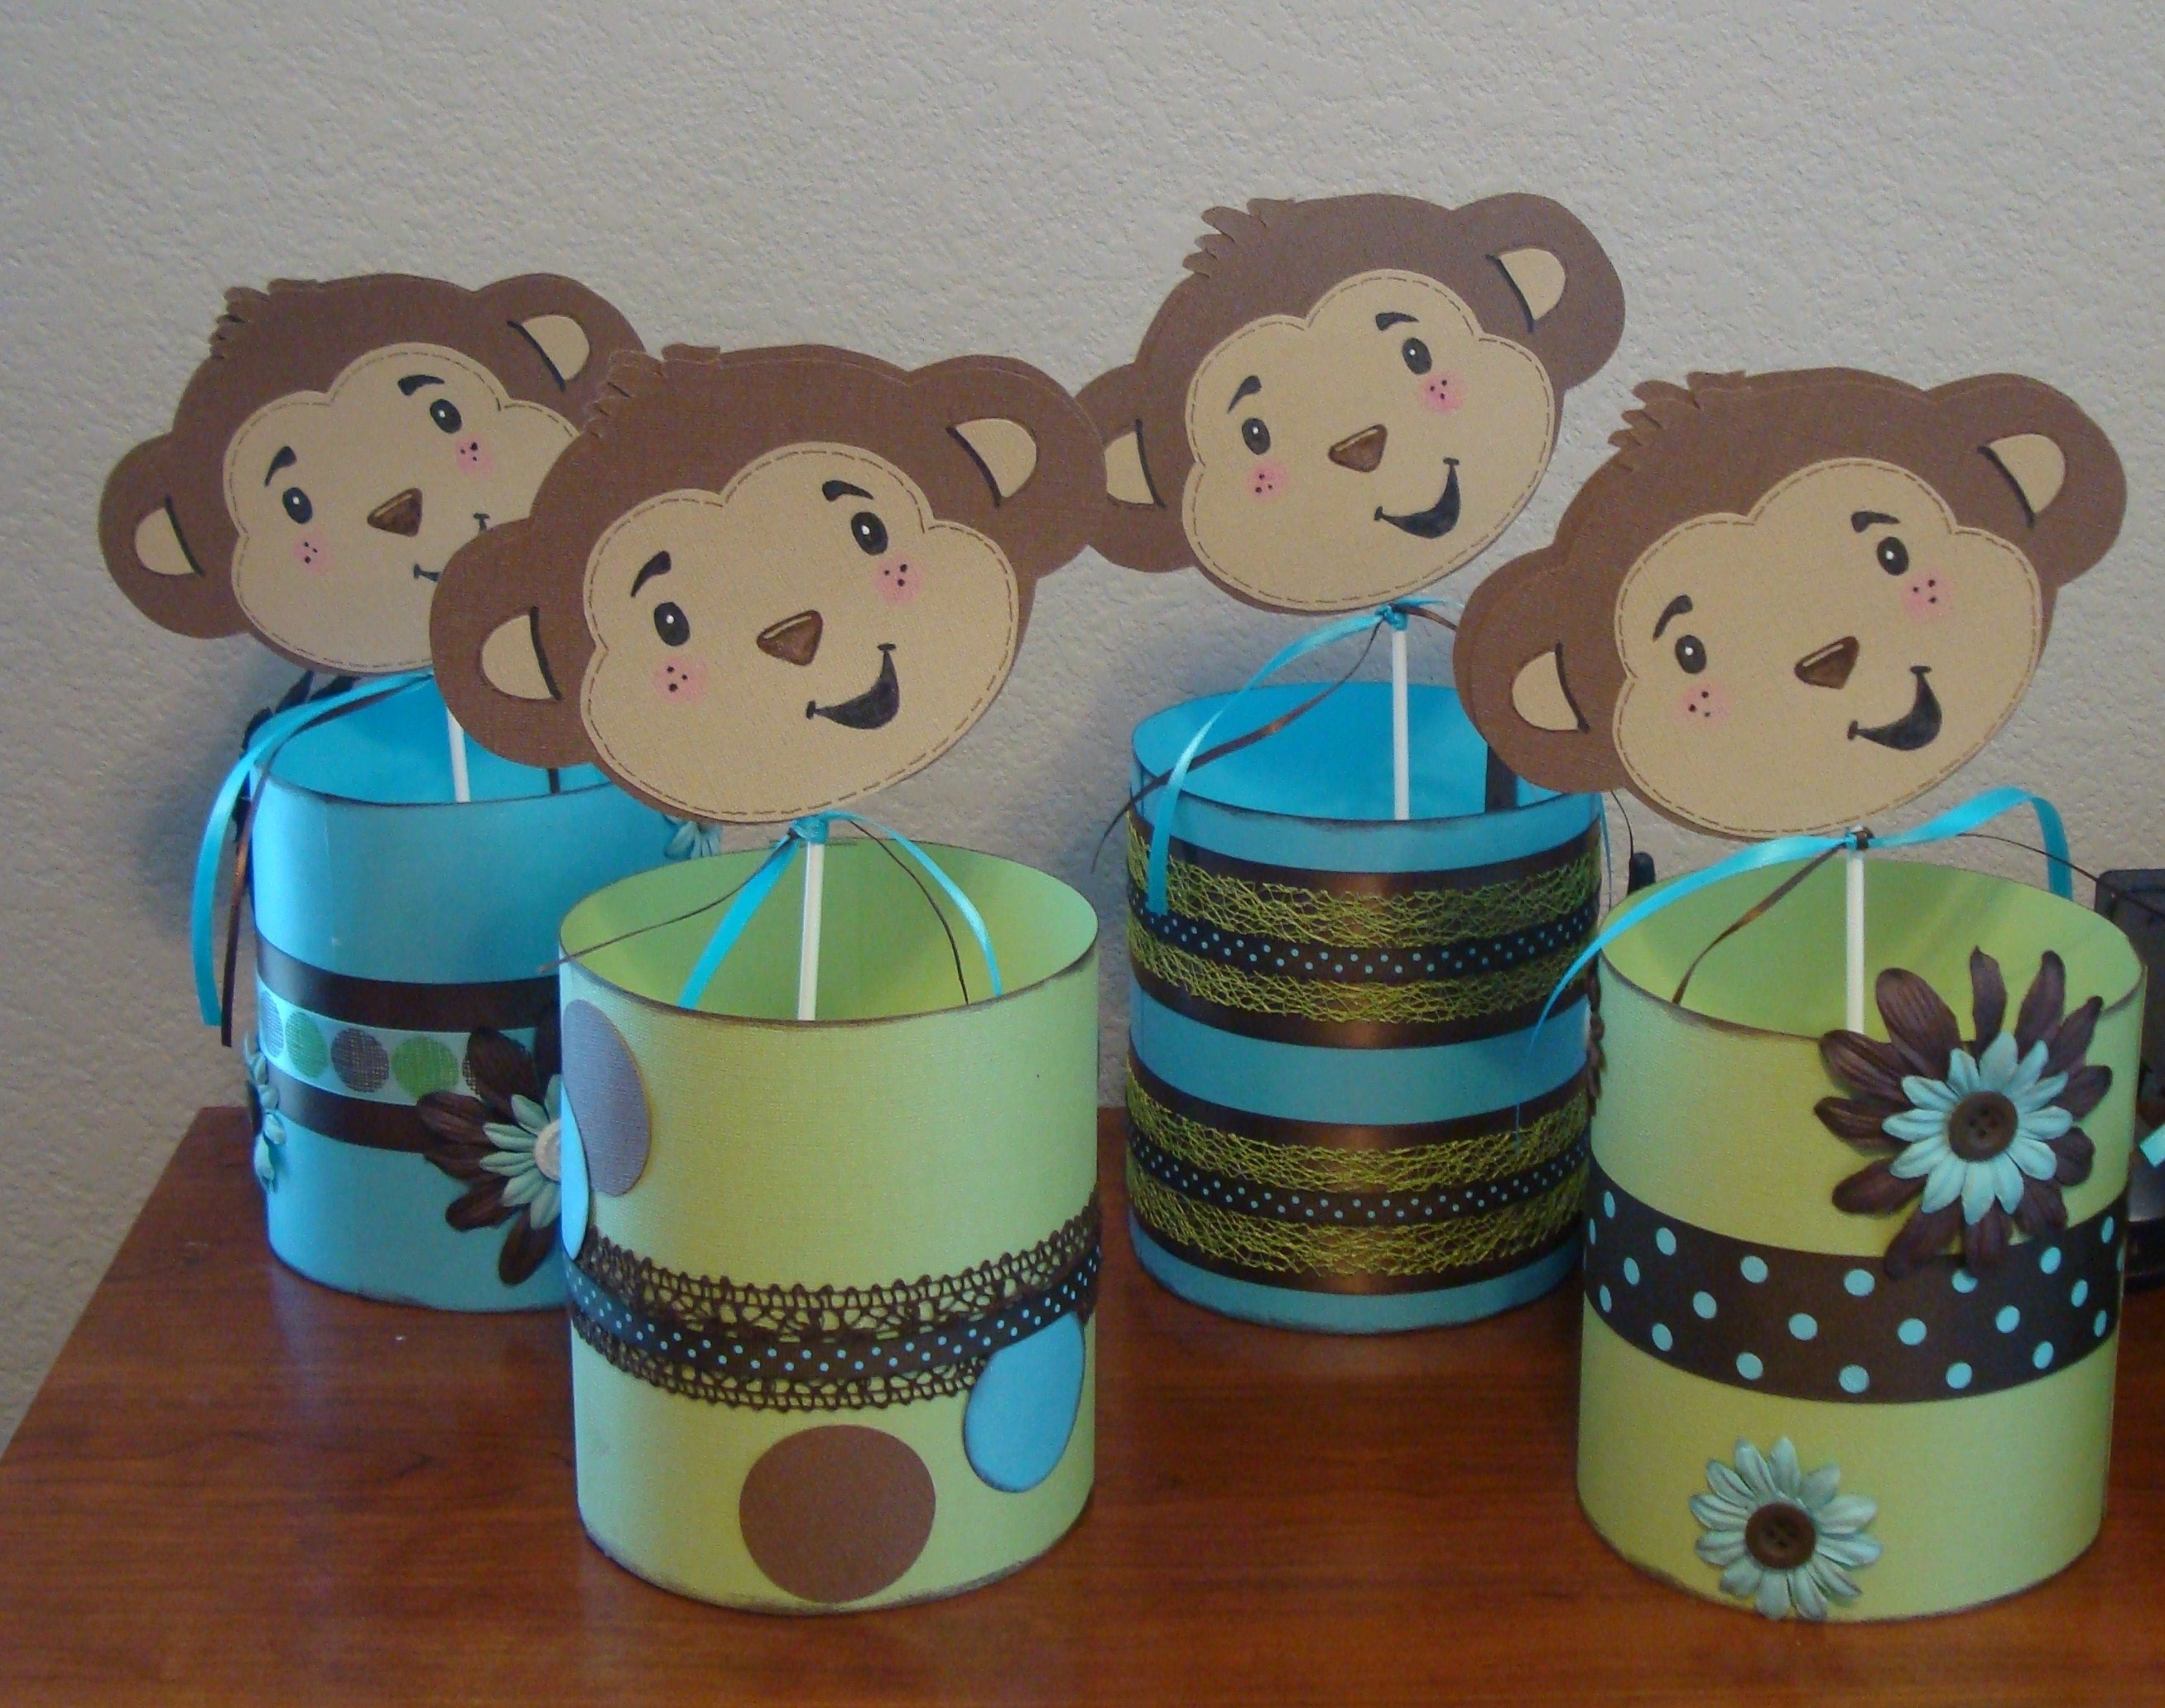 10 Most Popular Monkey Themed Baby Shower Ideas baby shower ideas monkey theme omega center ideas for baby 2020